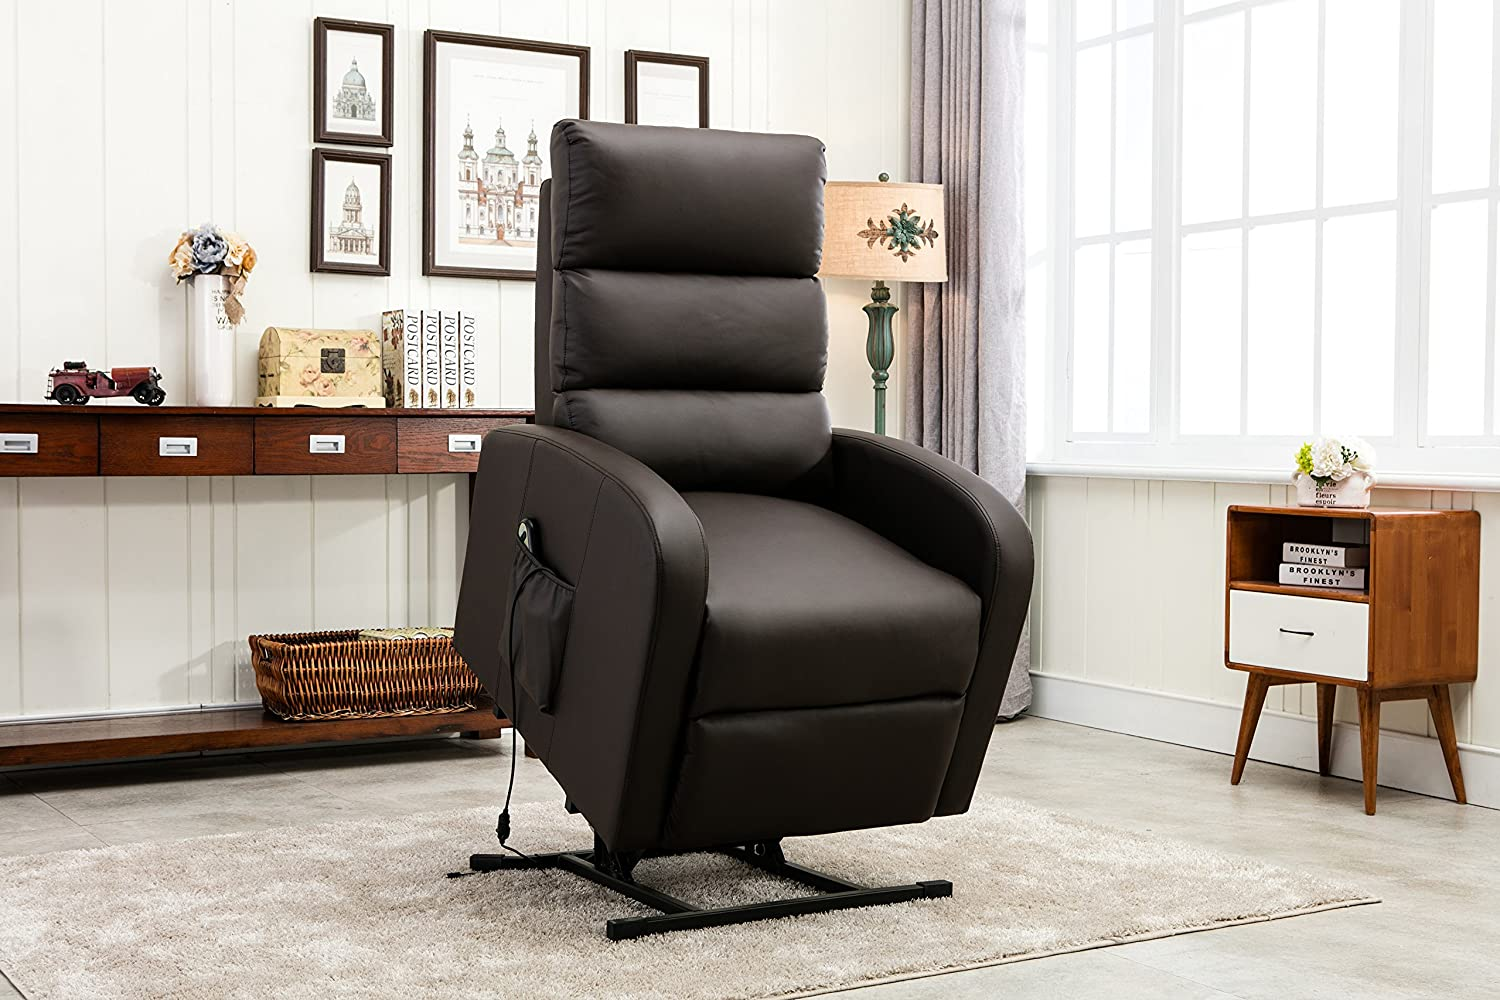 power lift recliner chair rc medical assist wall hugger lounge seat